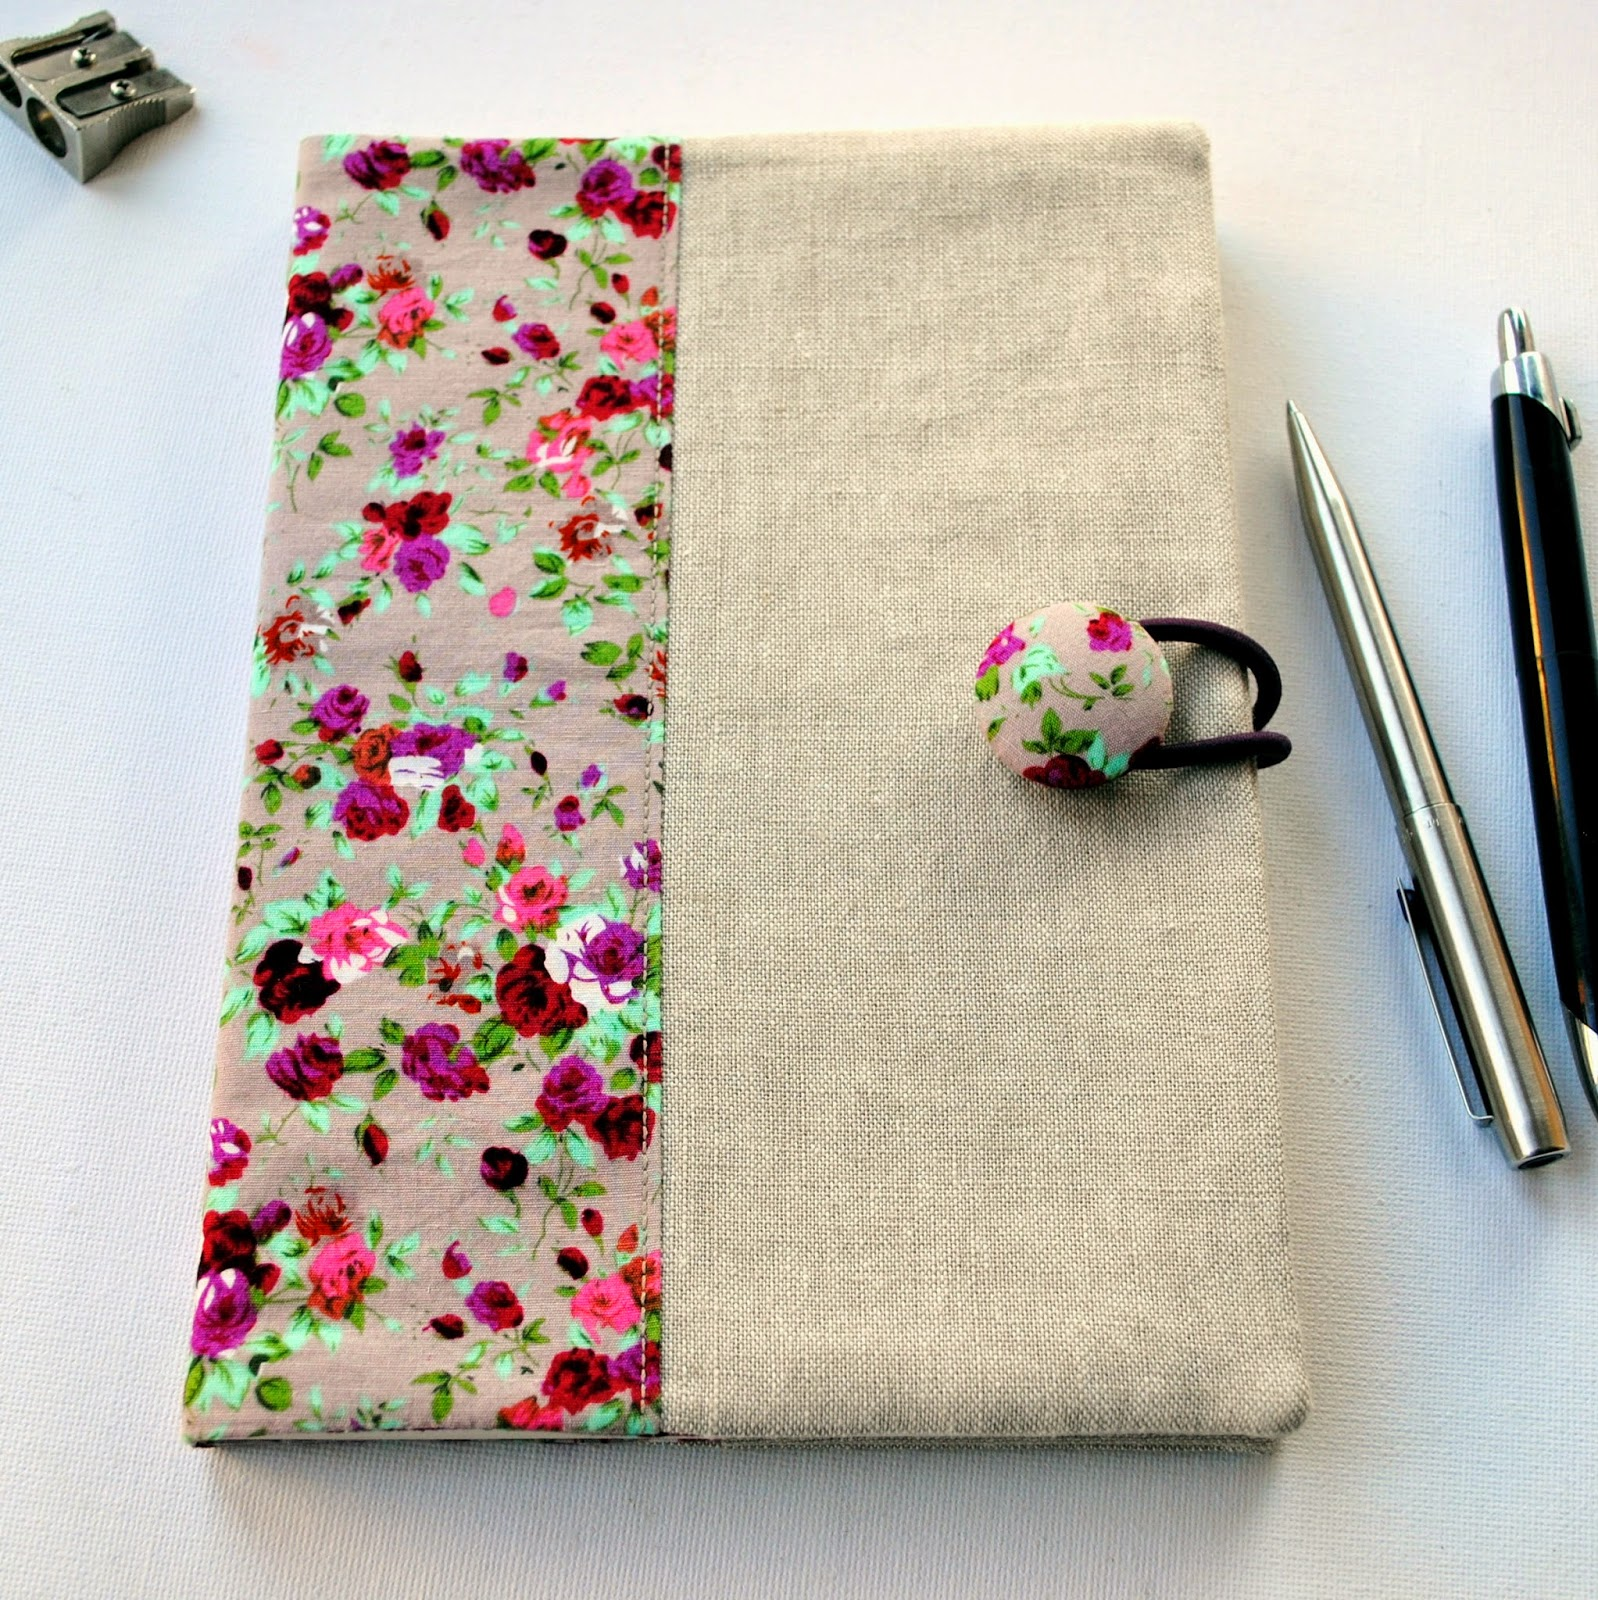 Creative Design To Cover Notebook ~ Creative notebook cover design handmade » path decorations pictures